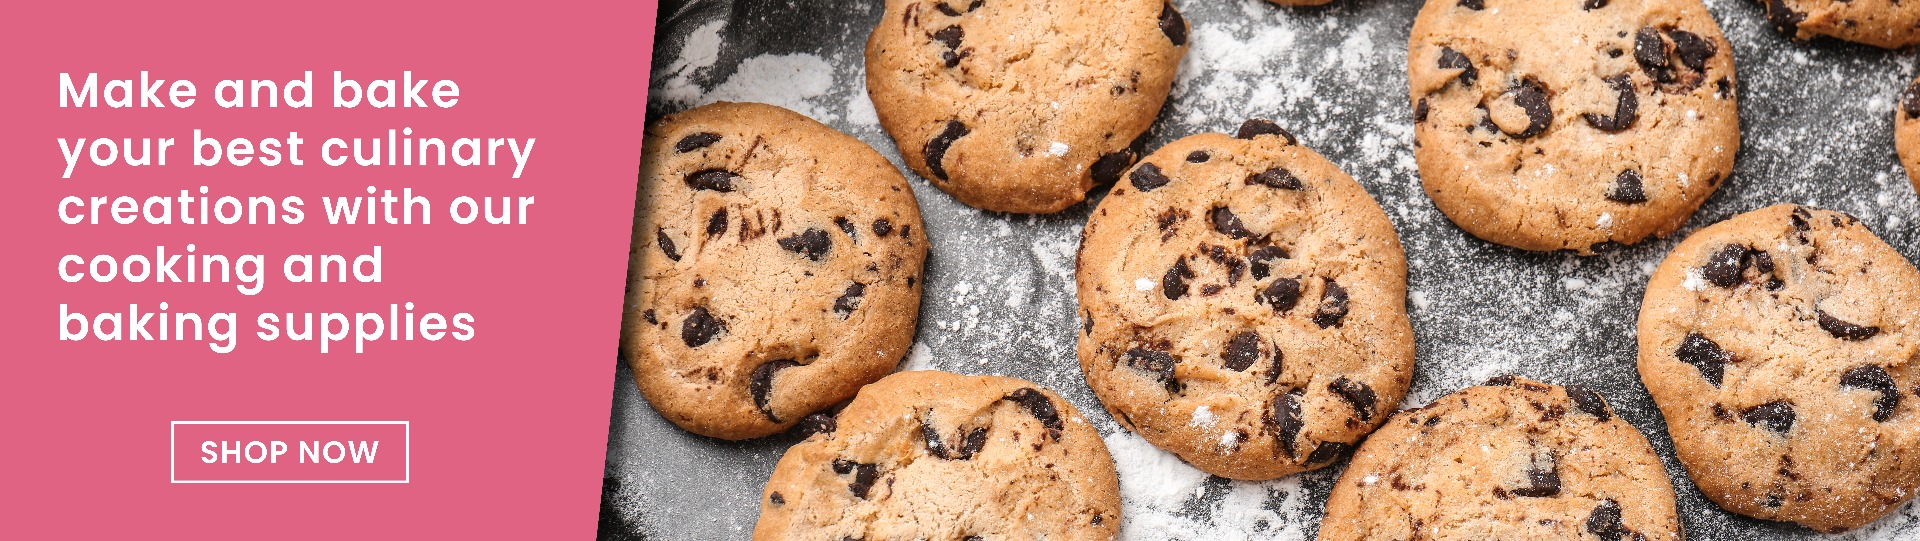 Make and bake your best culinary creations with our cooking and baking supplies